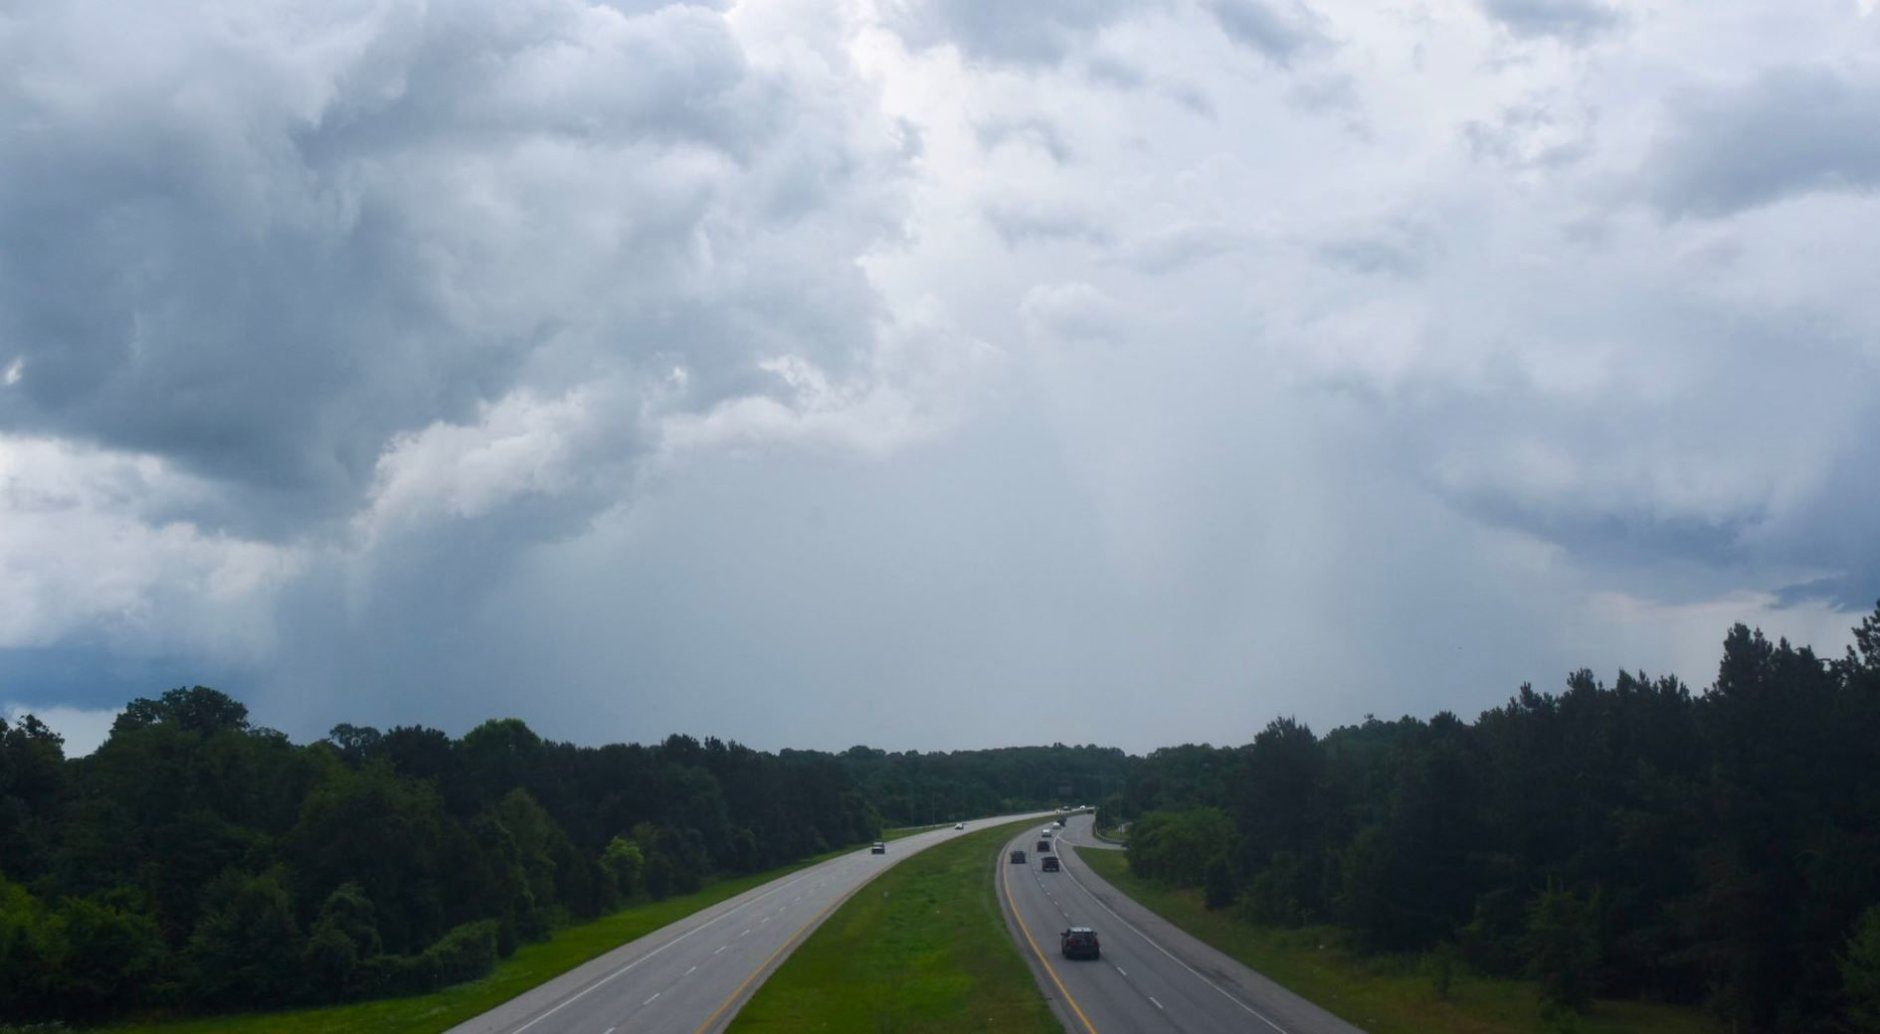 Storm clouds form above Maryland state Route 4 on Monday, June 17, 2019. (WTOP/Dave Dildine)